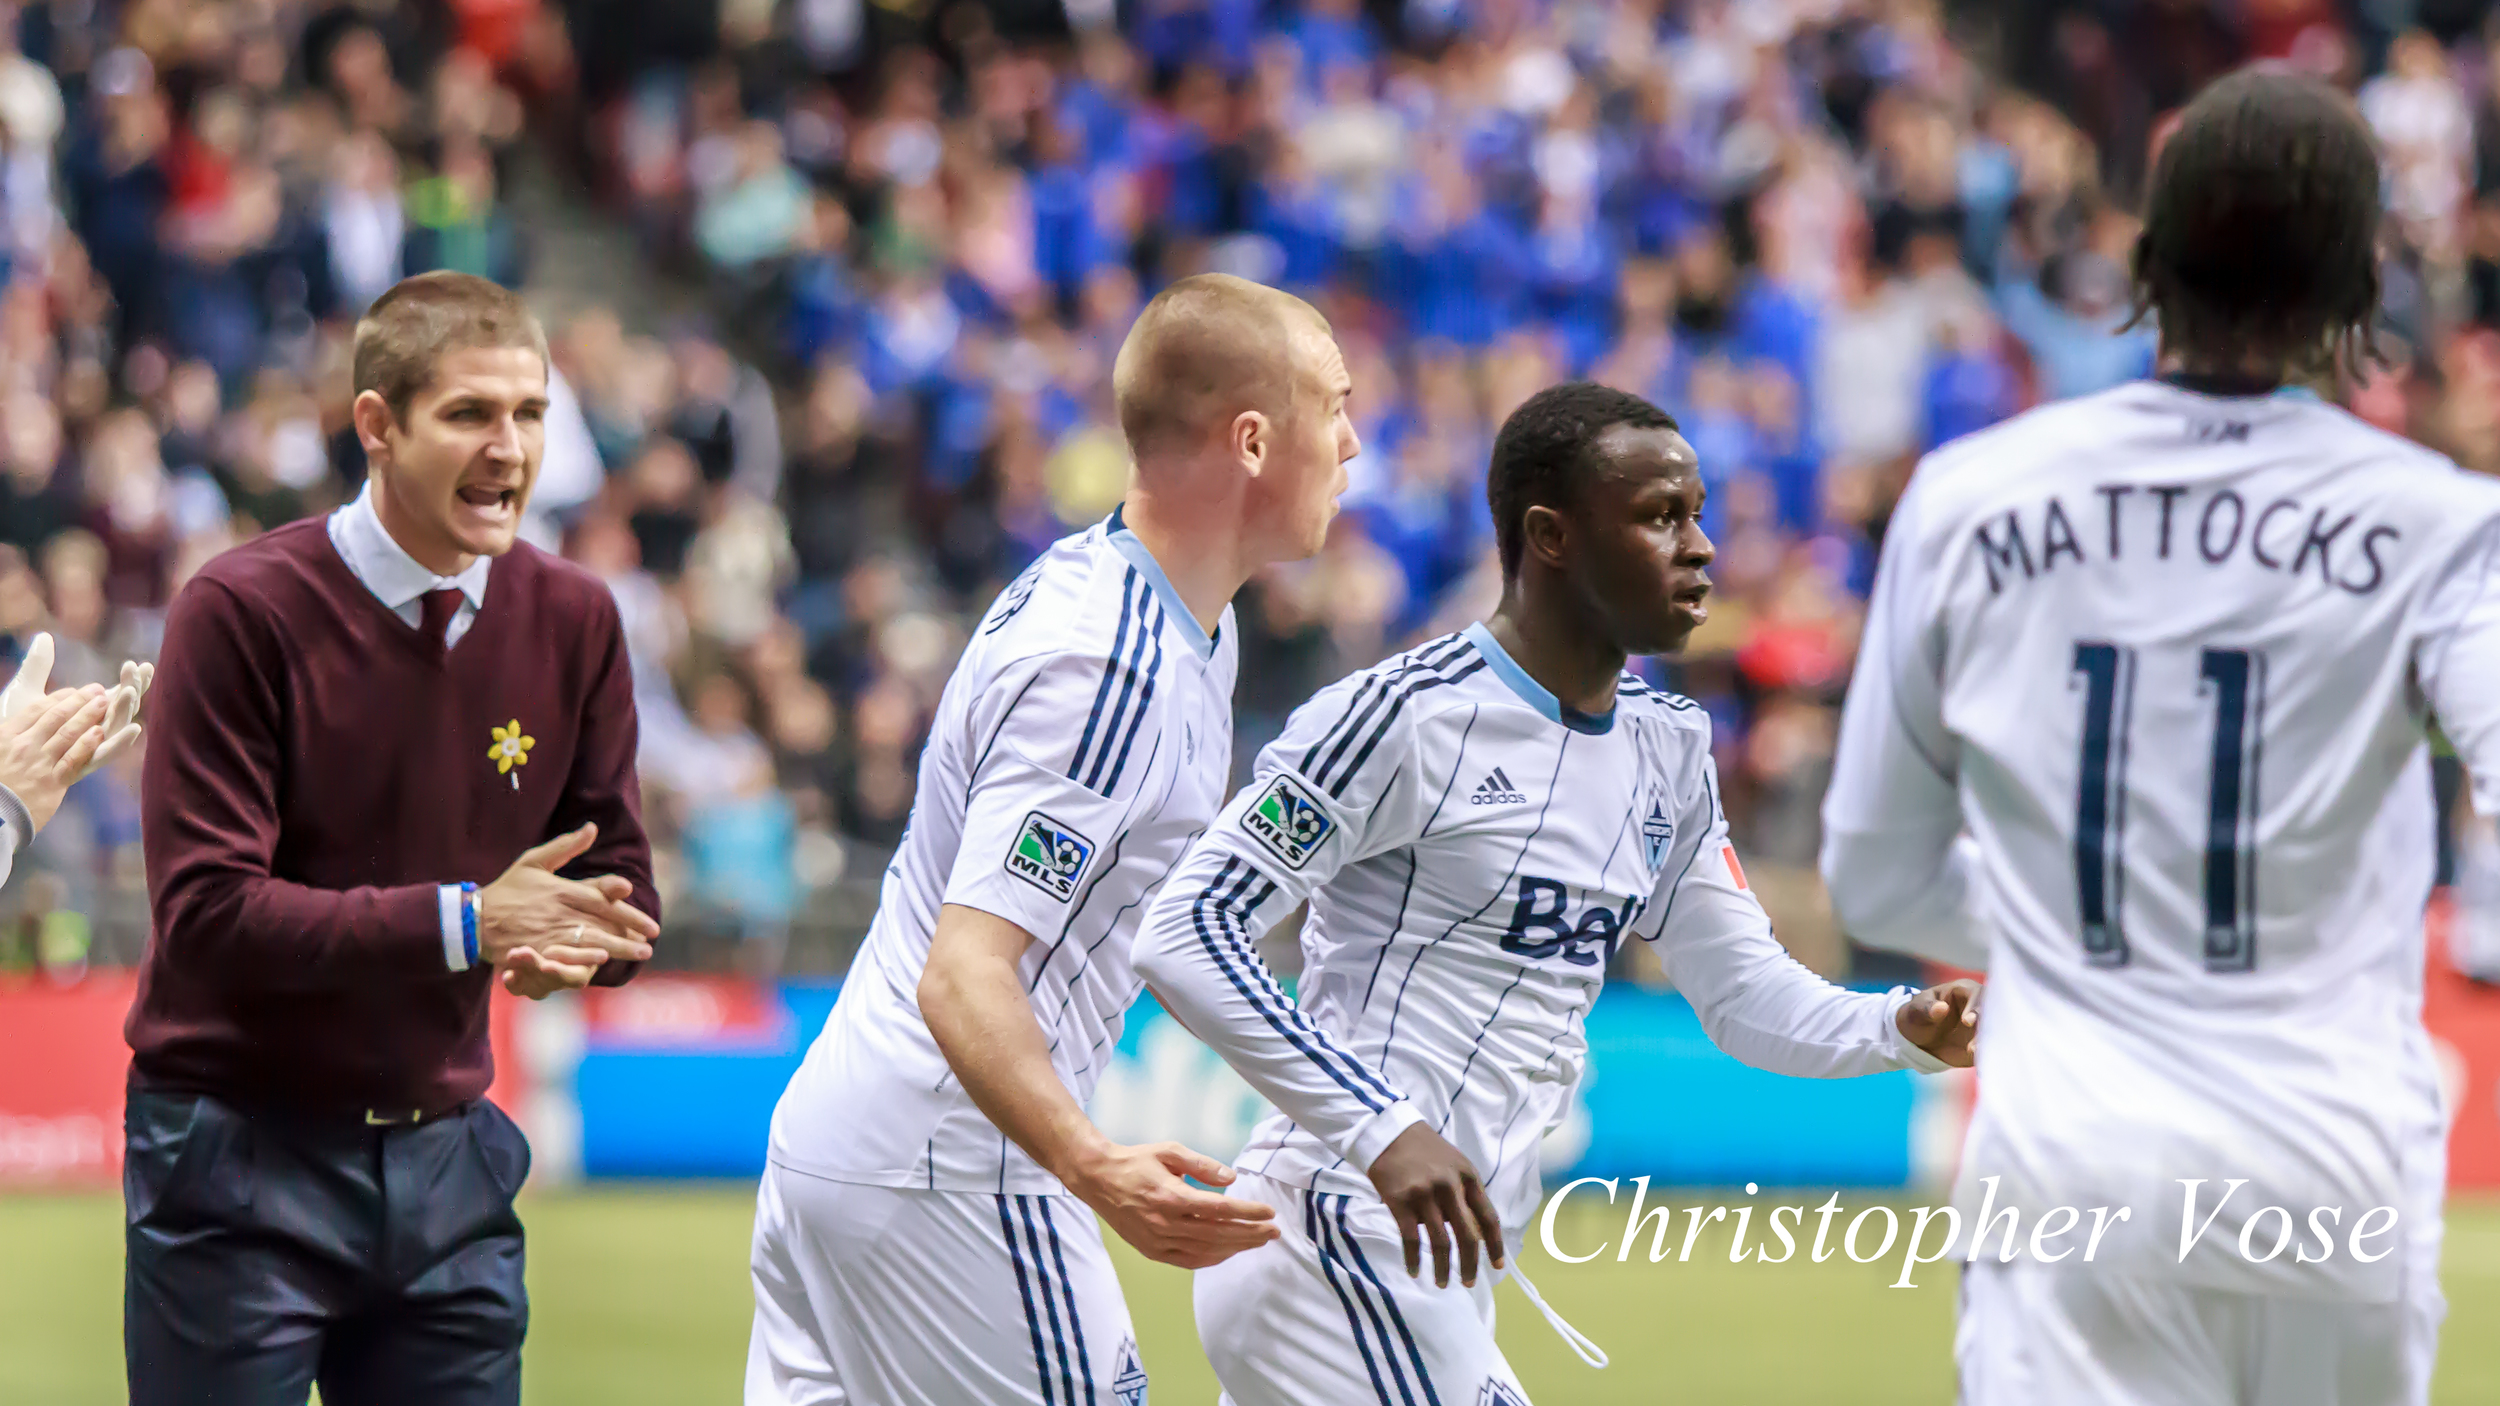 2014-04-19 Kekuta Manneh Goal Celebration 3.jpg